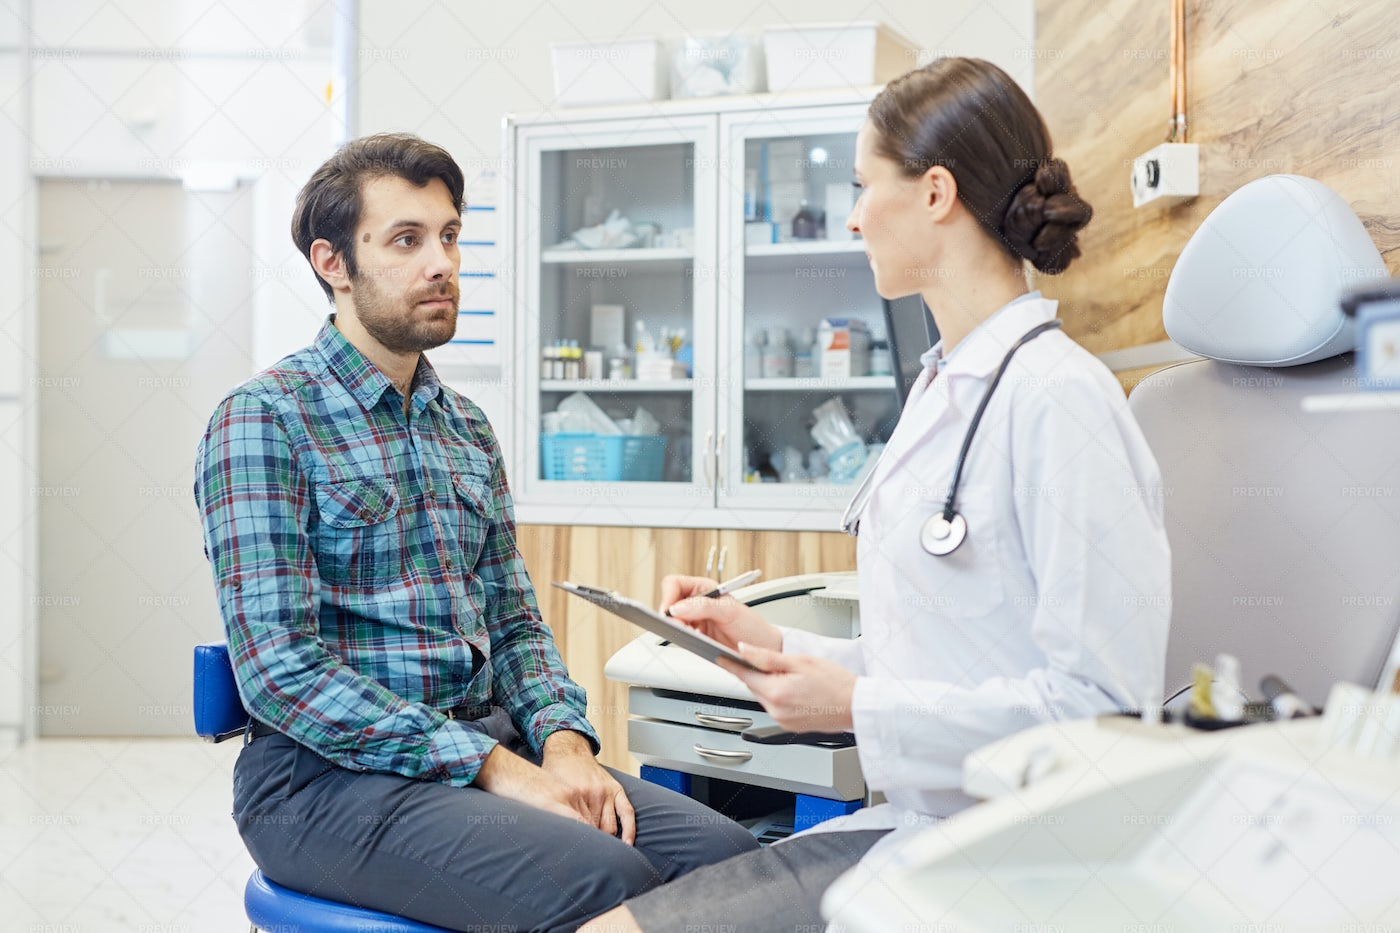 Patient And His Doctor: Stock Photos